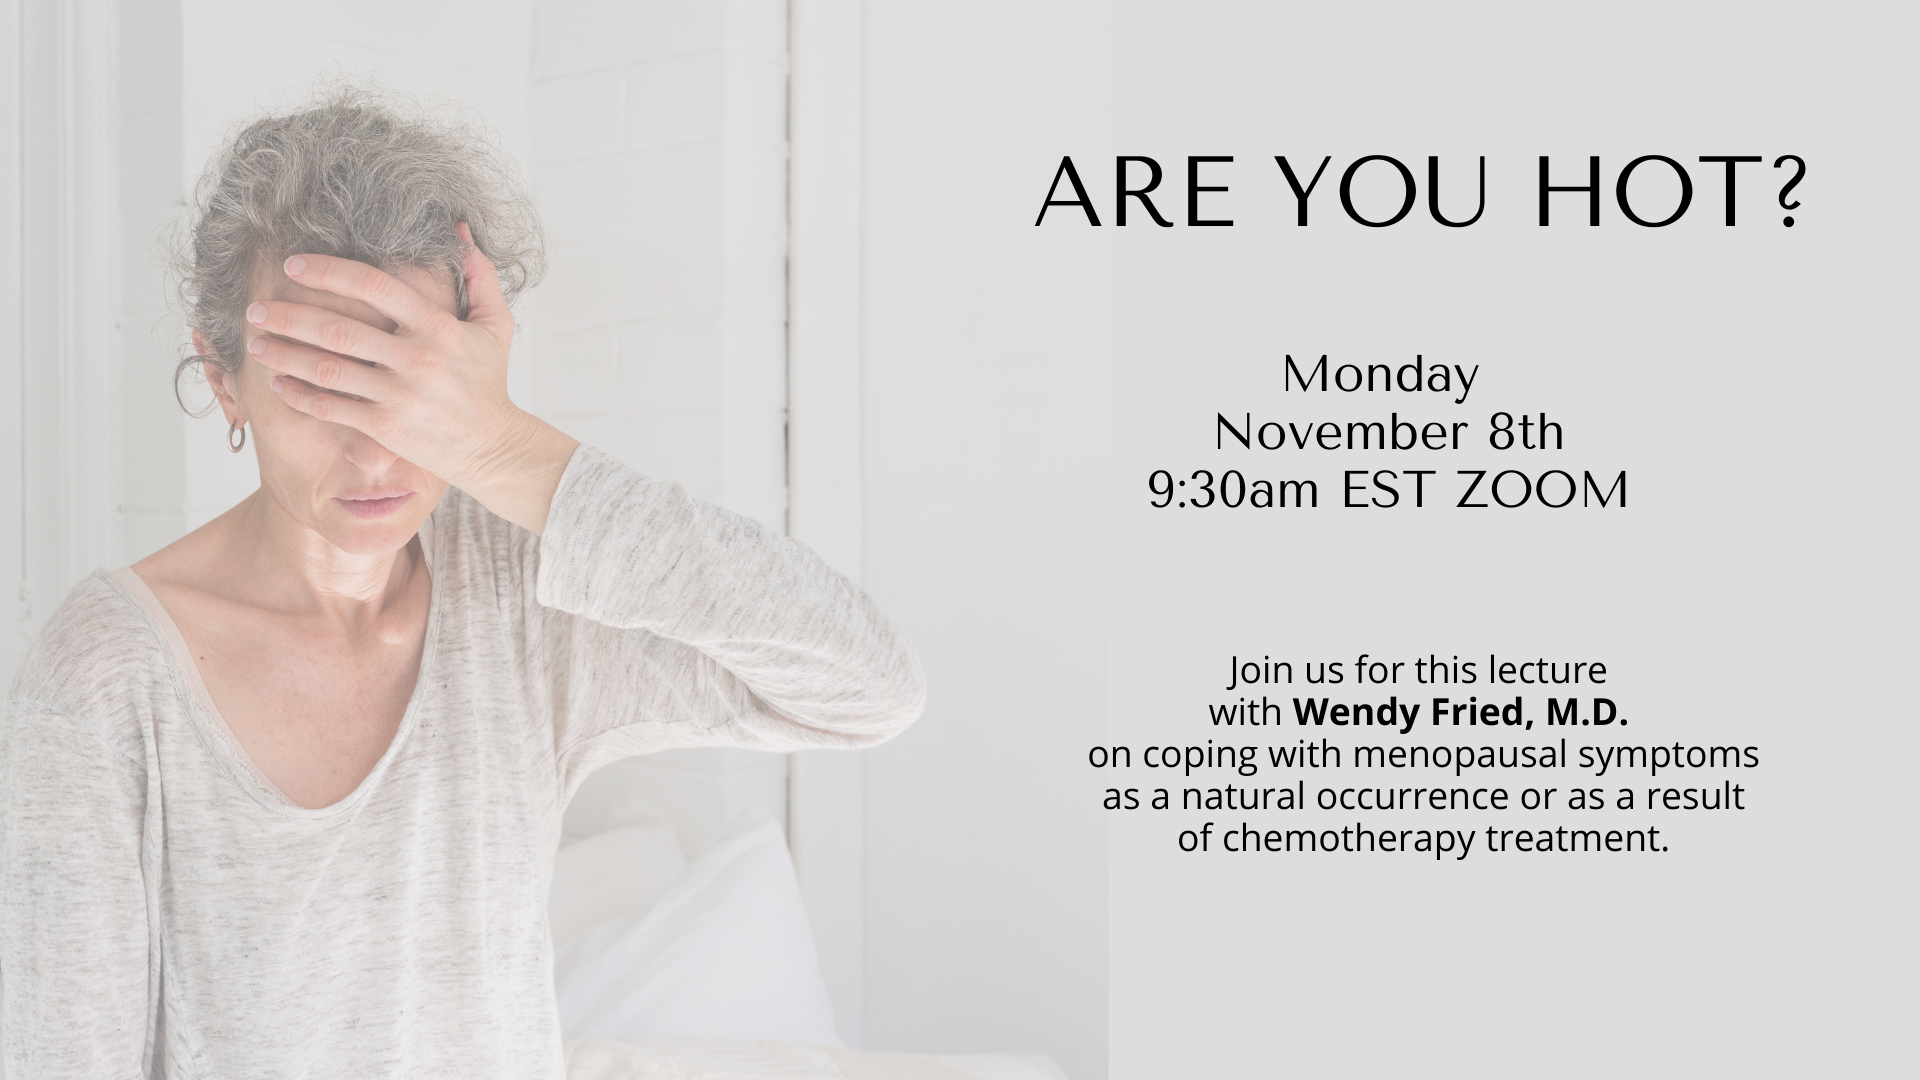 color image of woman in background holding forehead. Header text: Are you hot? Join us on Nov. 8 for educational lecture on coping with menopausal symptoms